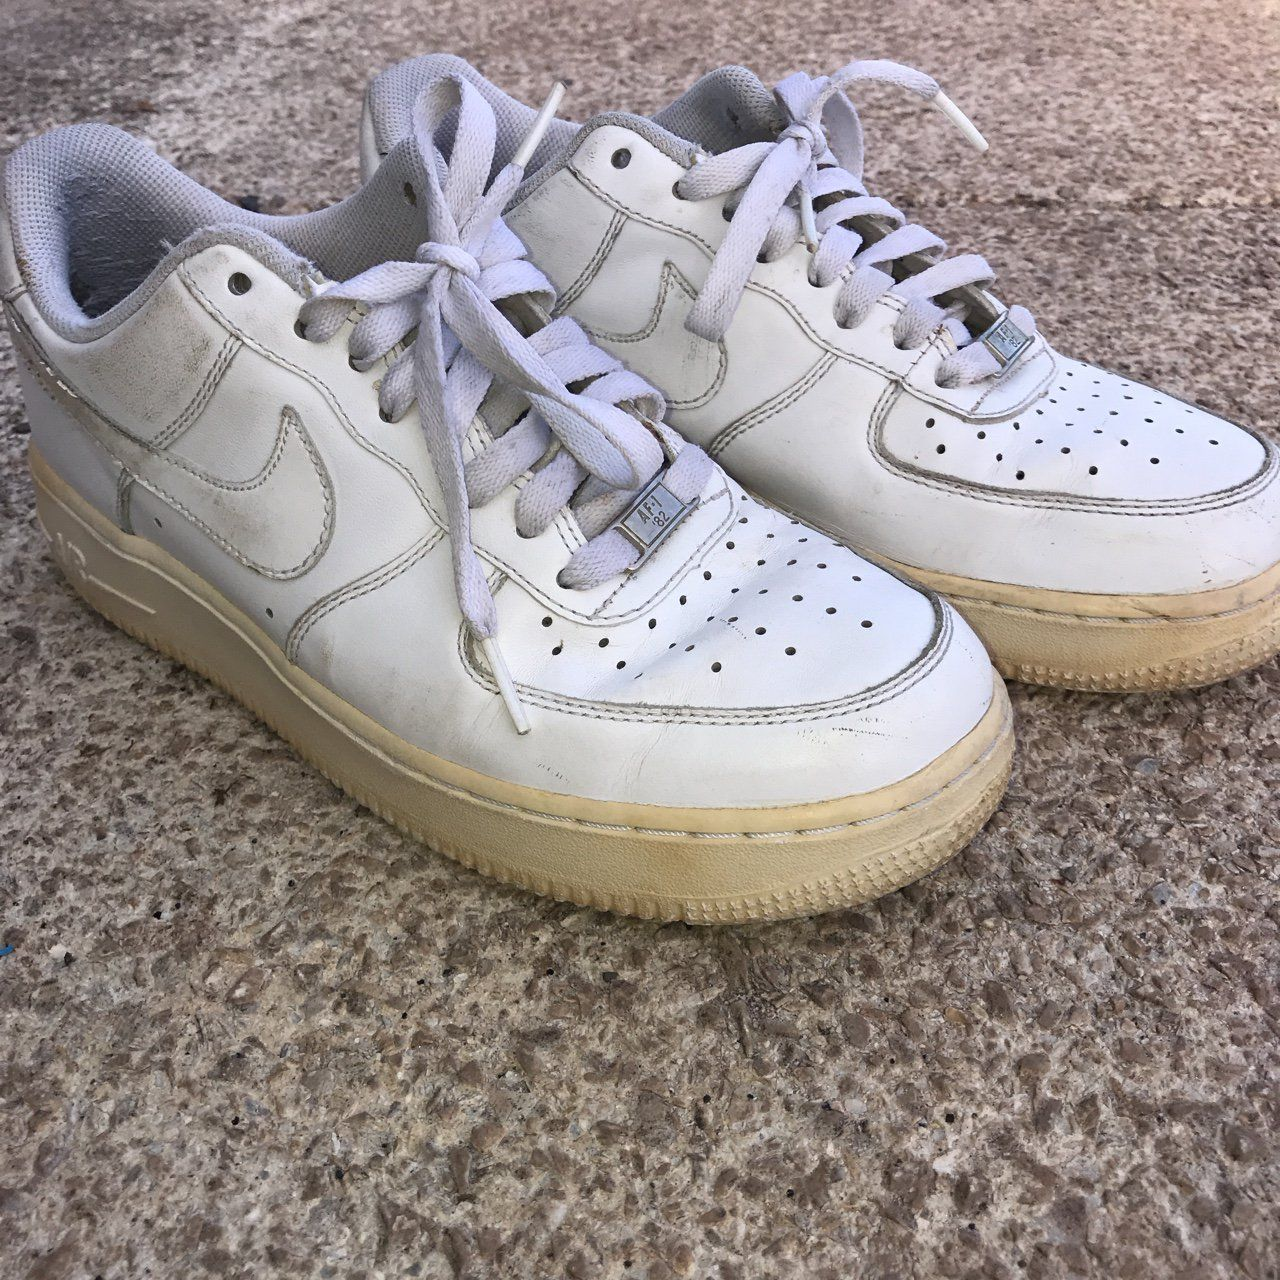 40c2e7143c Awesome vintage Nike Air Force 1s! These are so cool but I never wear them  anymore. I love the vintage colored sole. Size 7.5 men's Size 8.5 women's  Tags ...